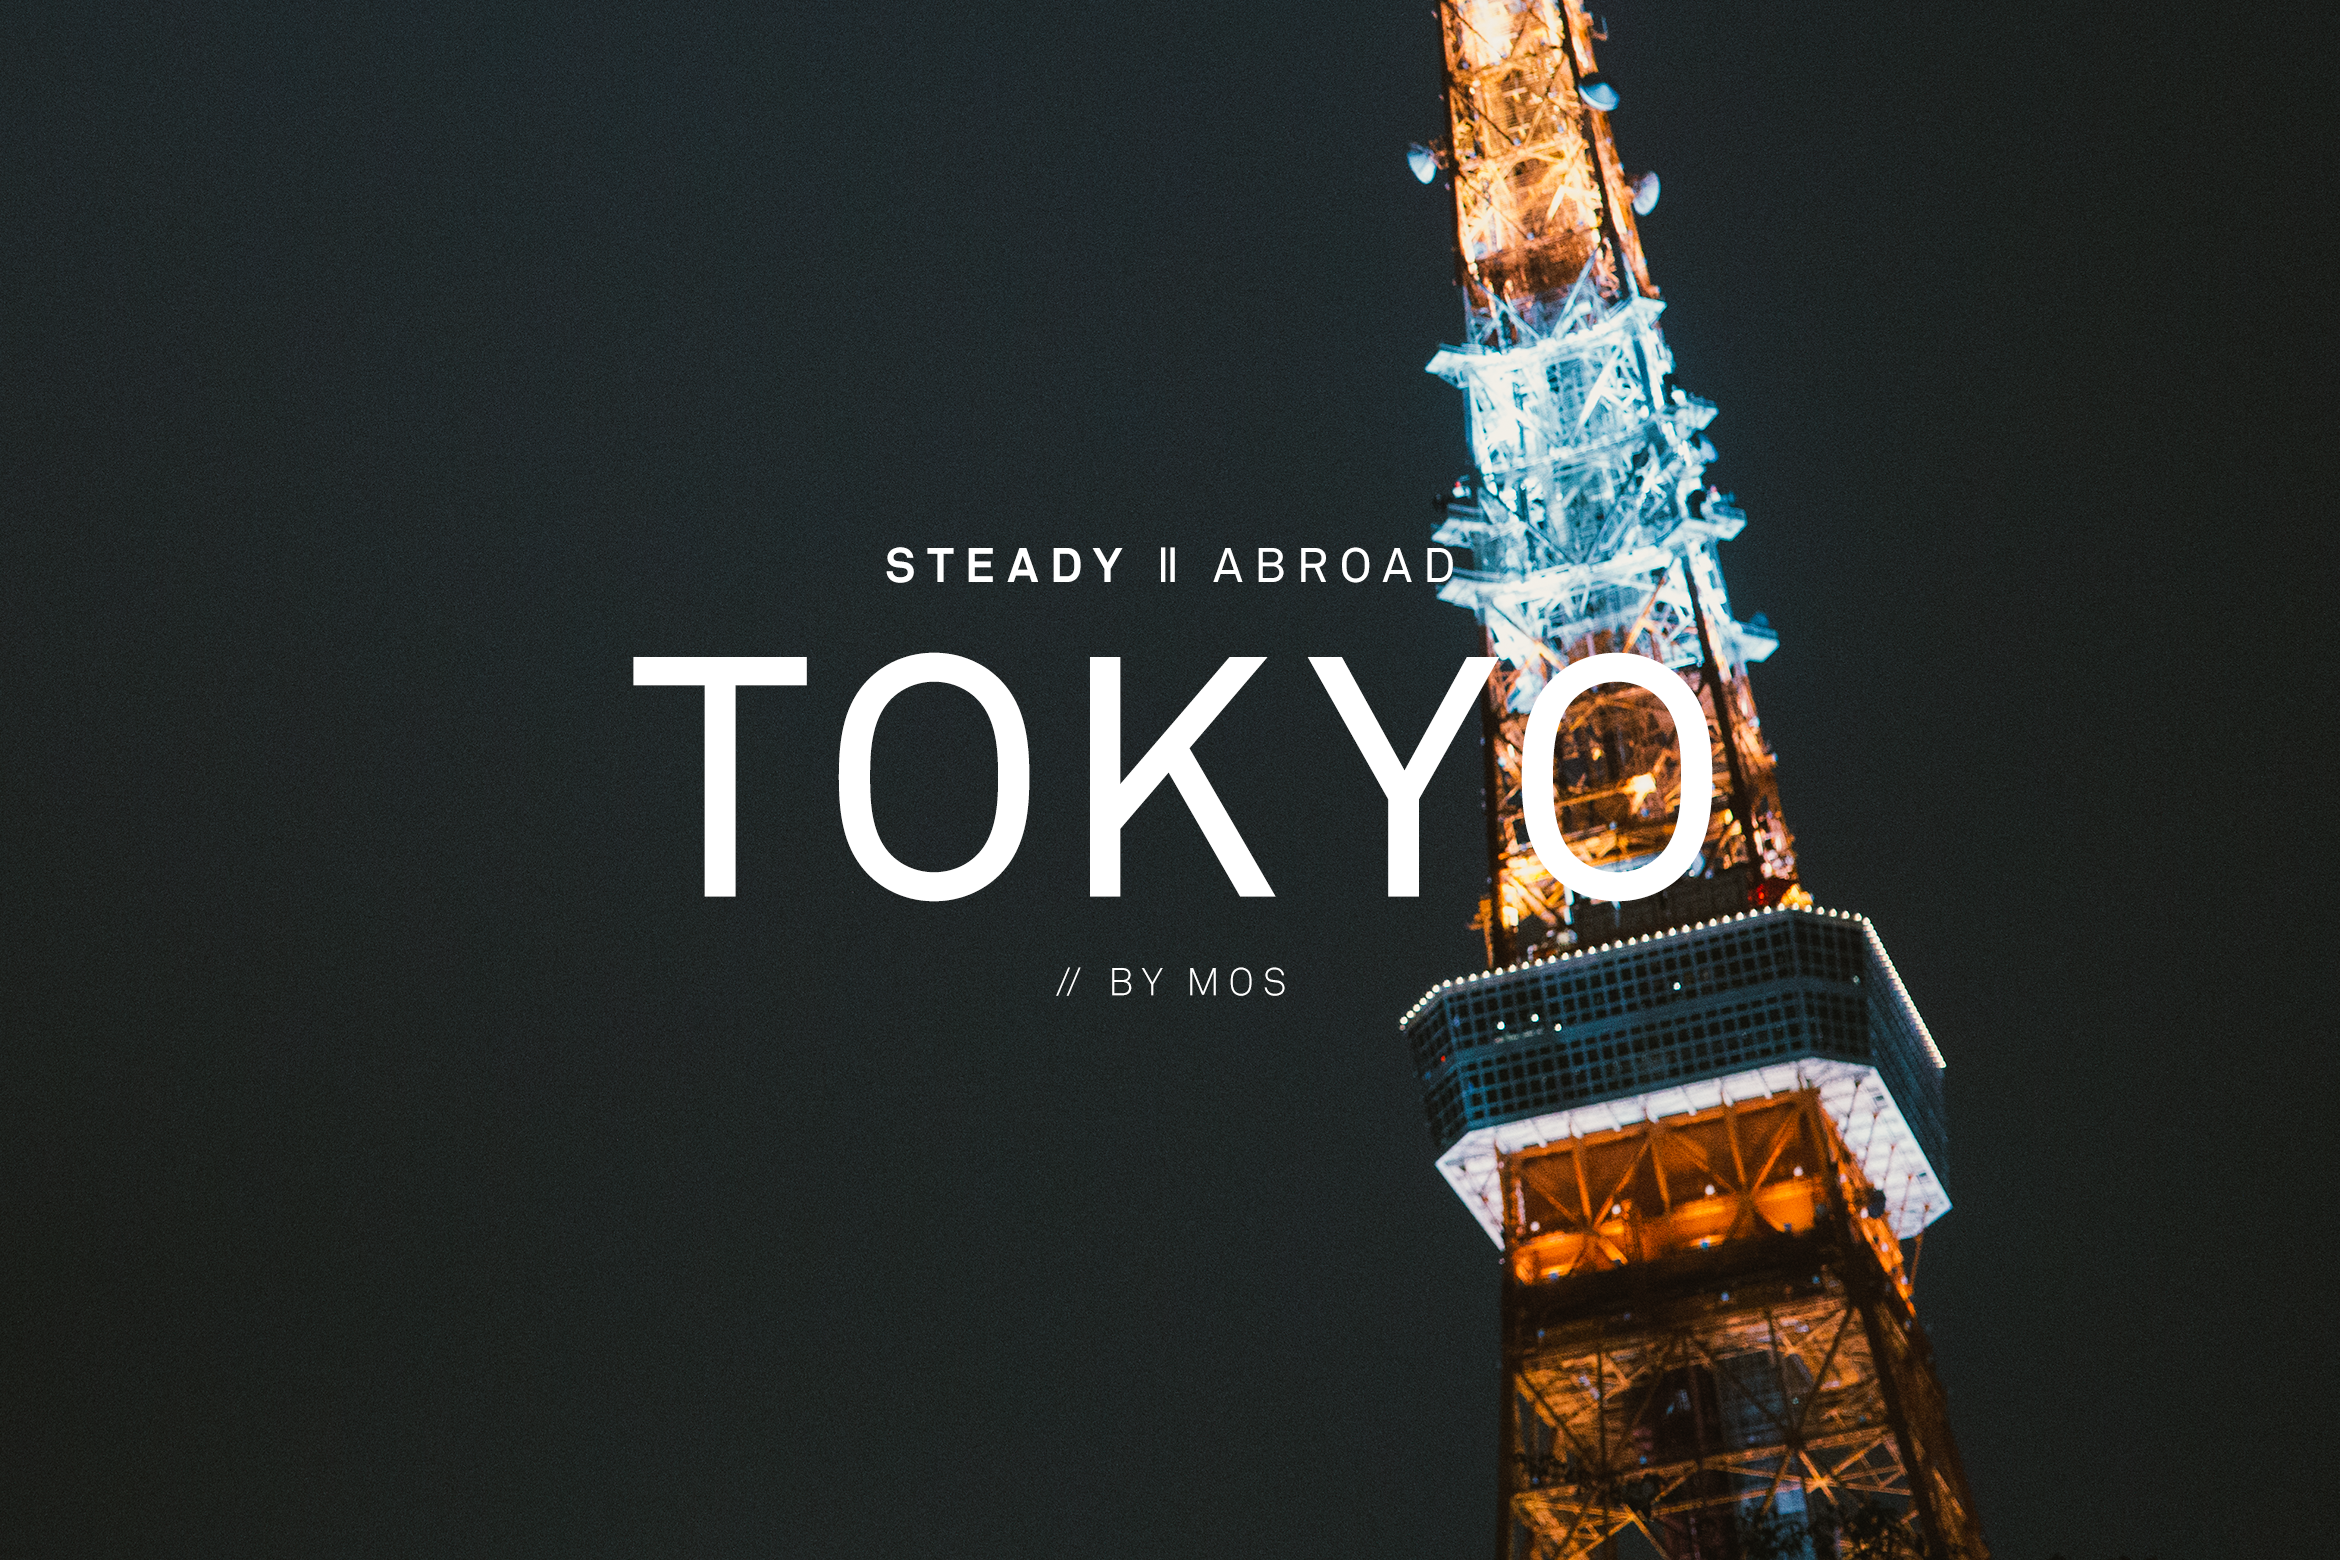 STEADY ABROAD: TOKYO // BY MOS